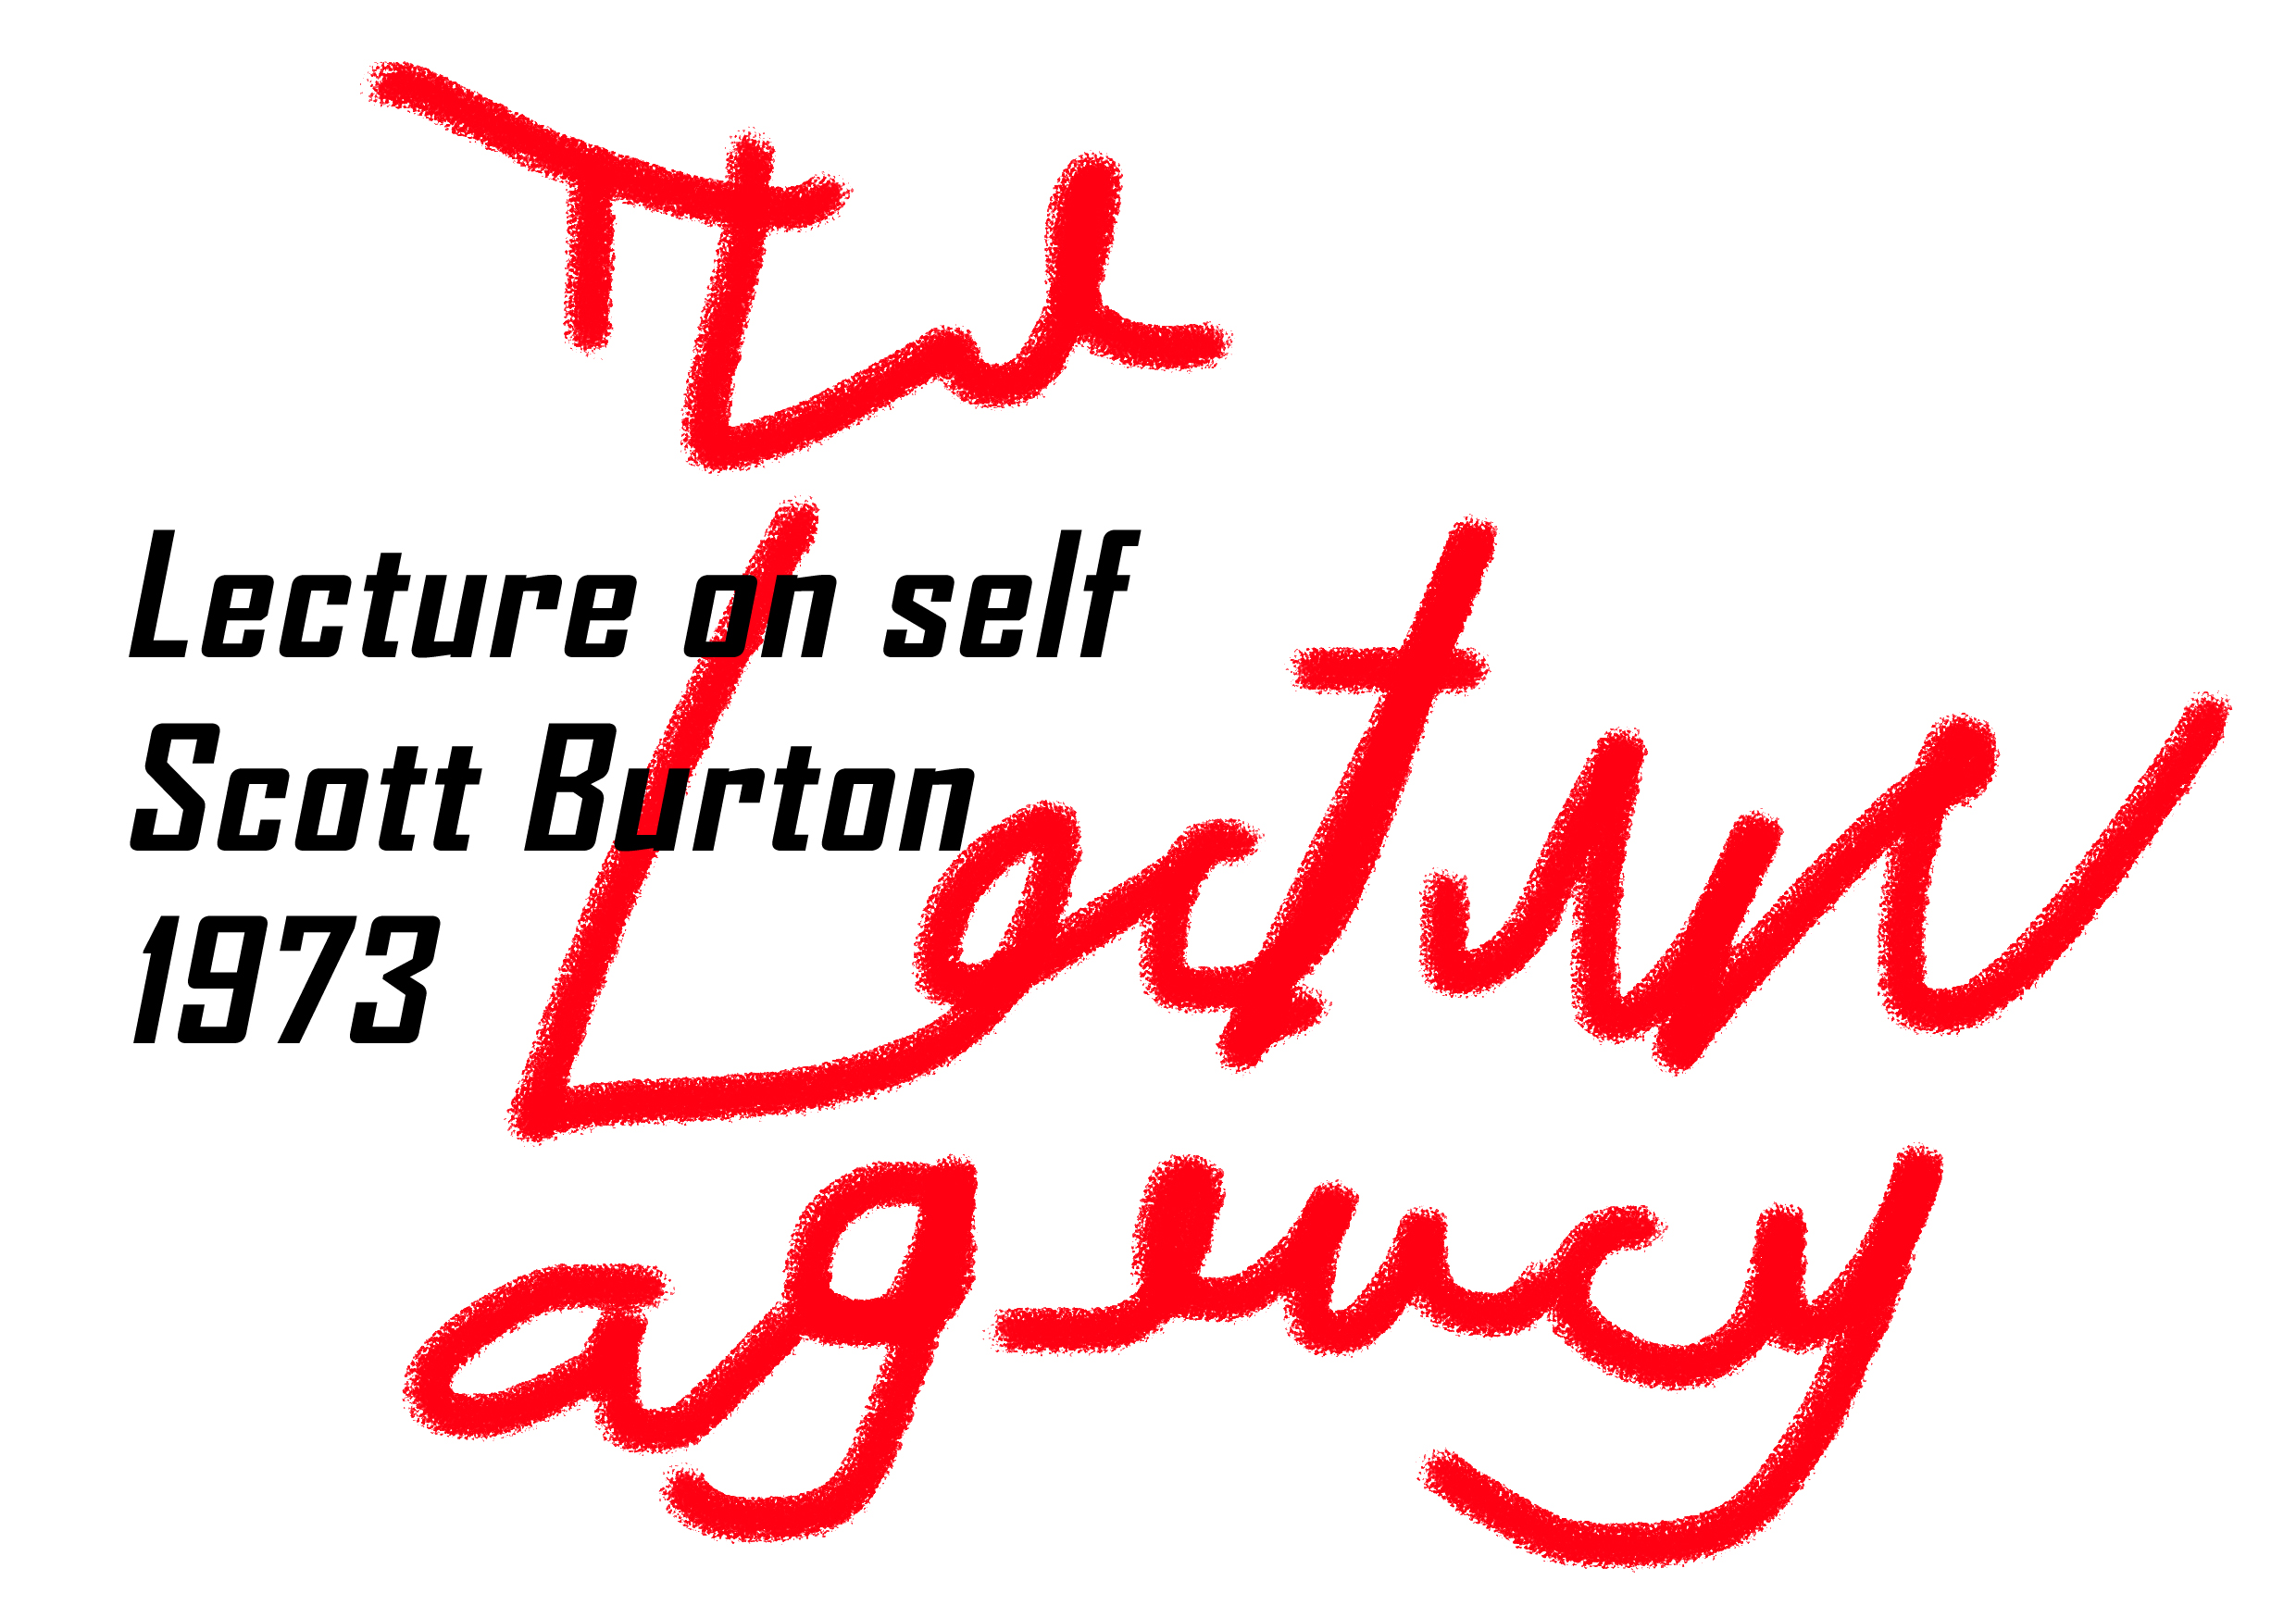 Scott Burton, The Lecture Agency, Lecture on Self